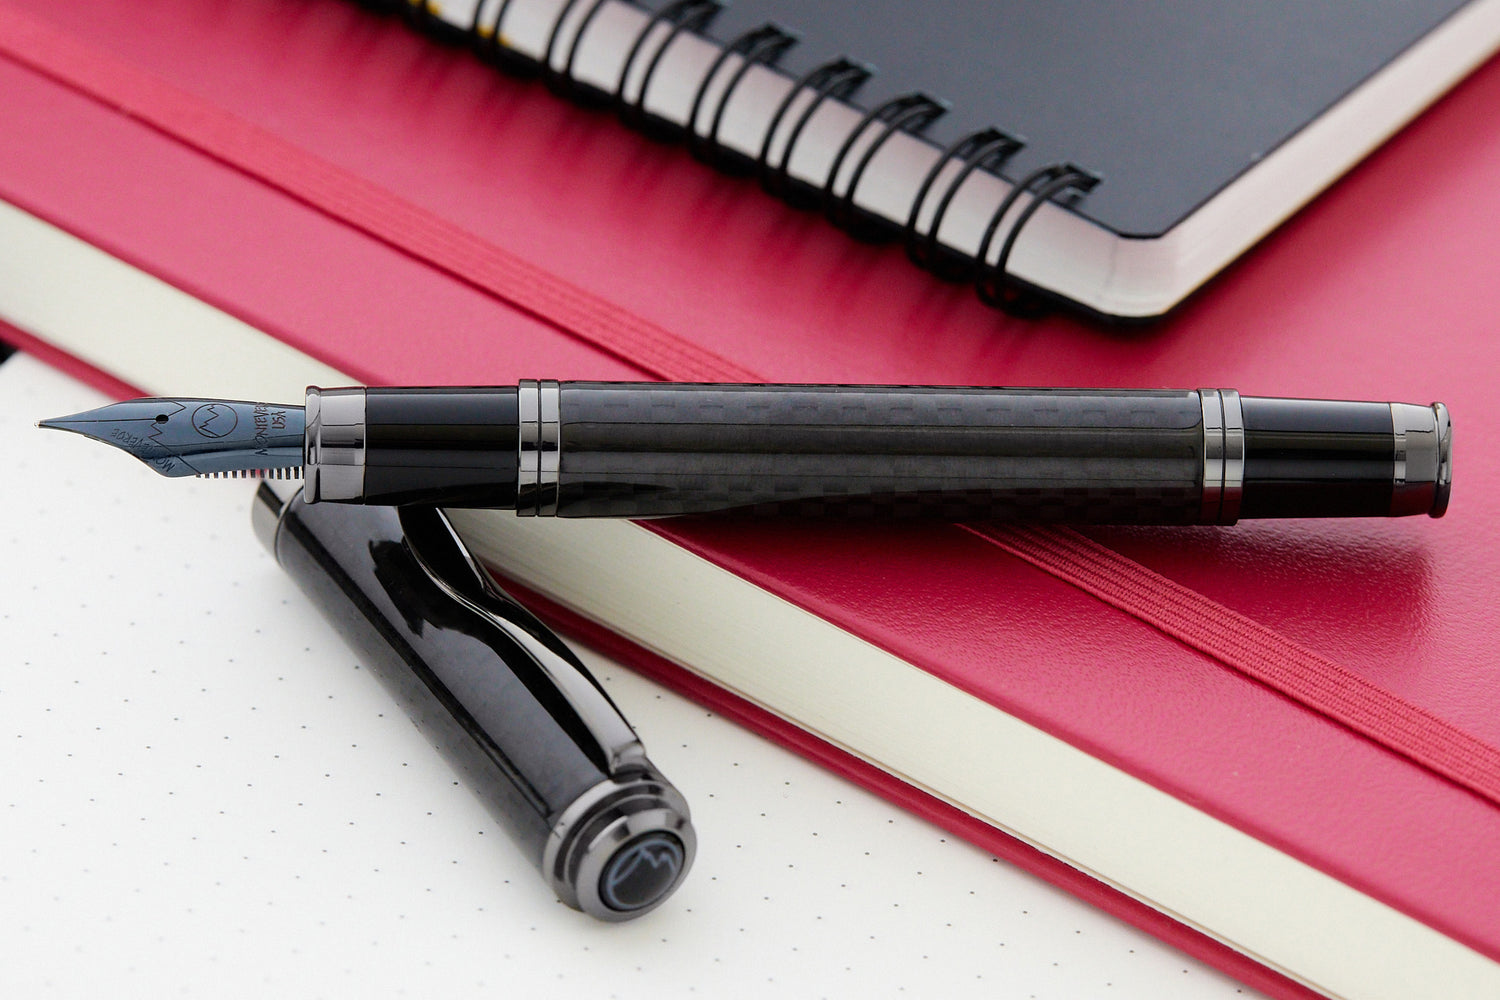 Monteverde Innova Fountain Pen - Carbon Fiber/Gunmetal (Limited Edition)